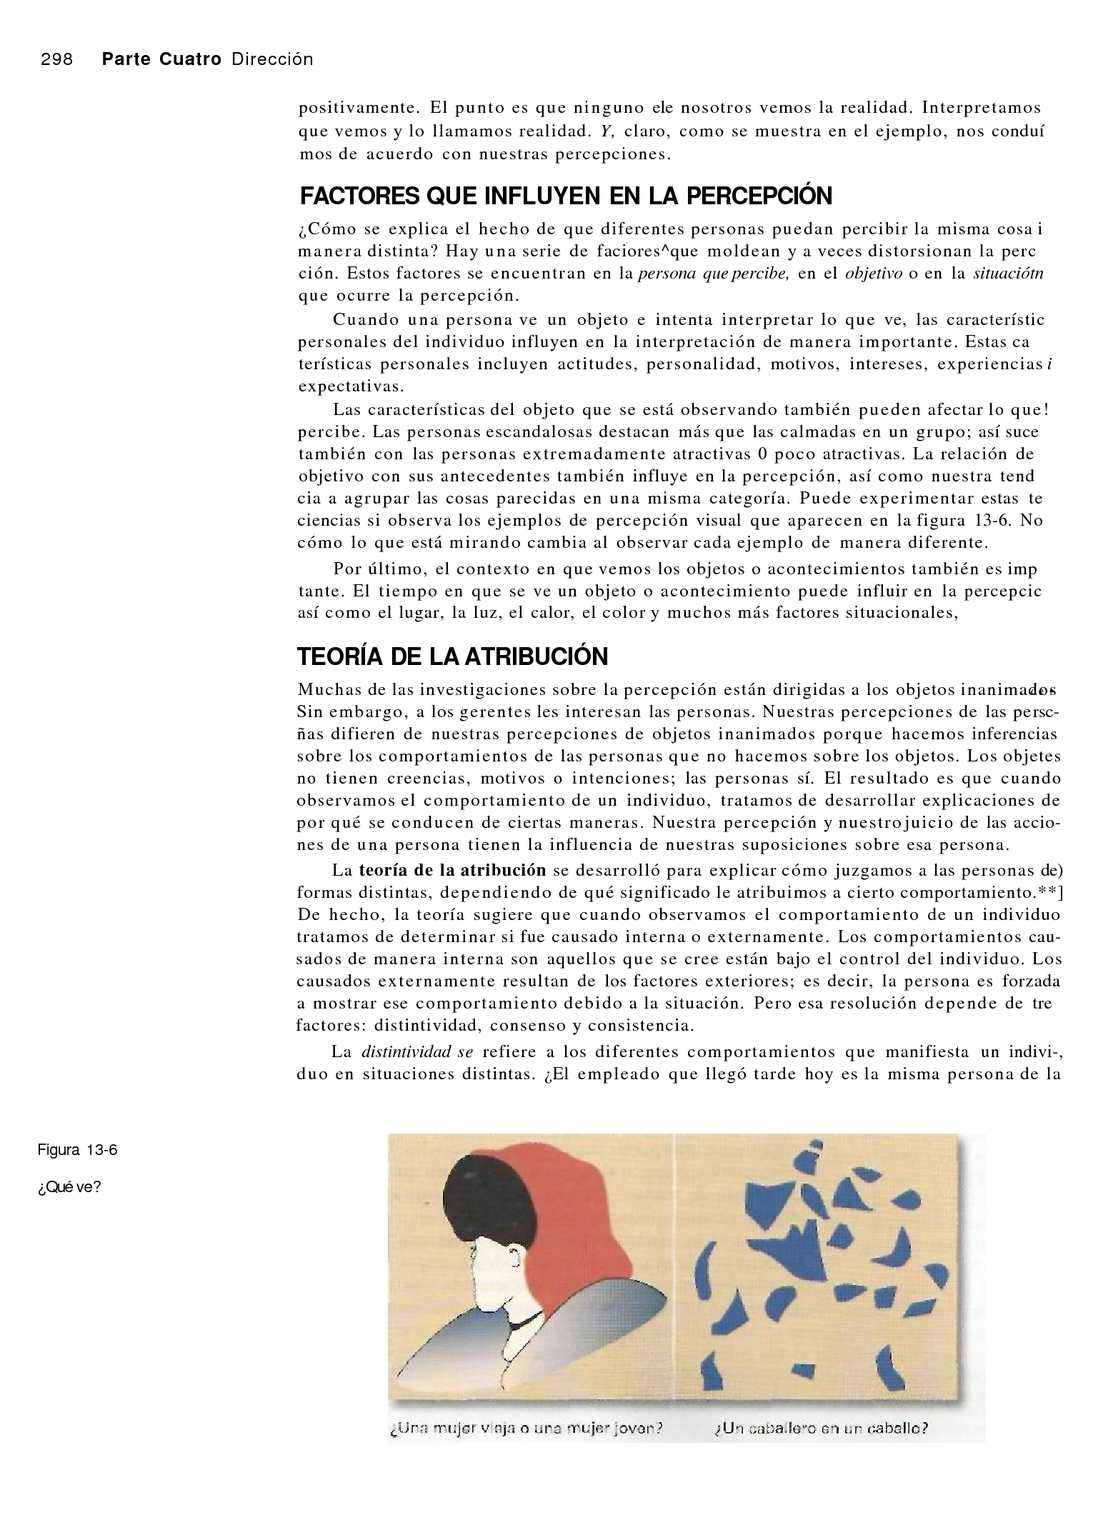 Page 308